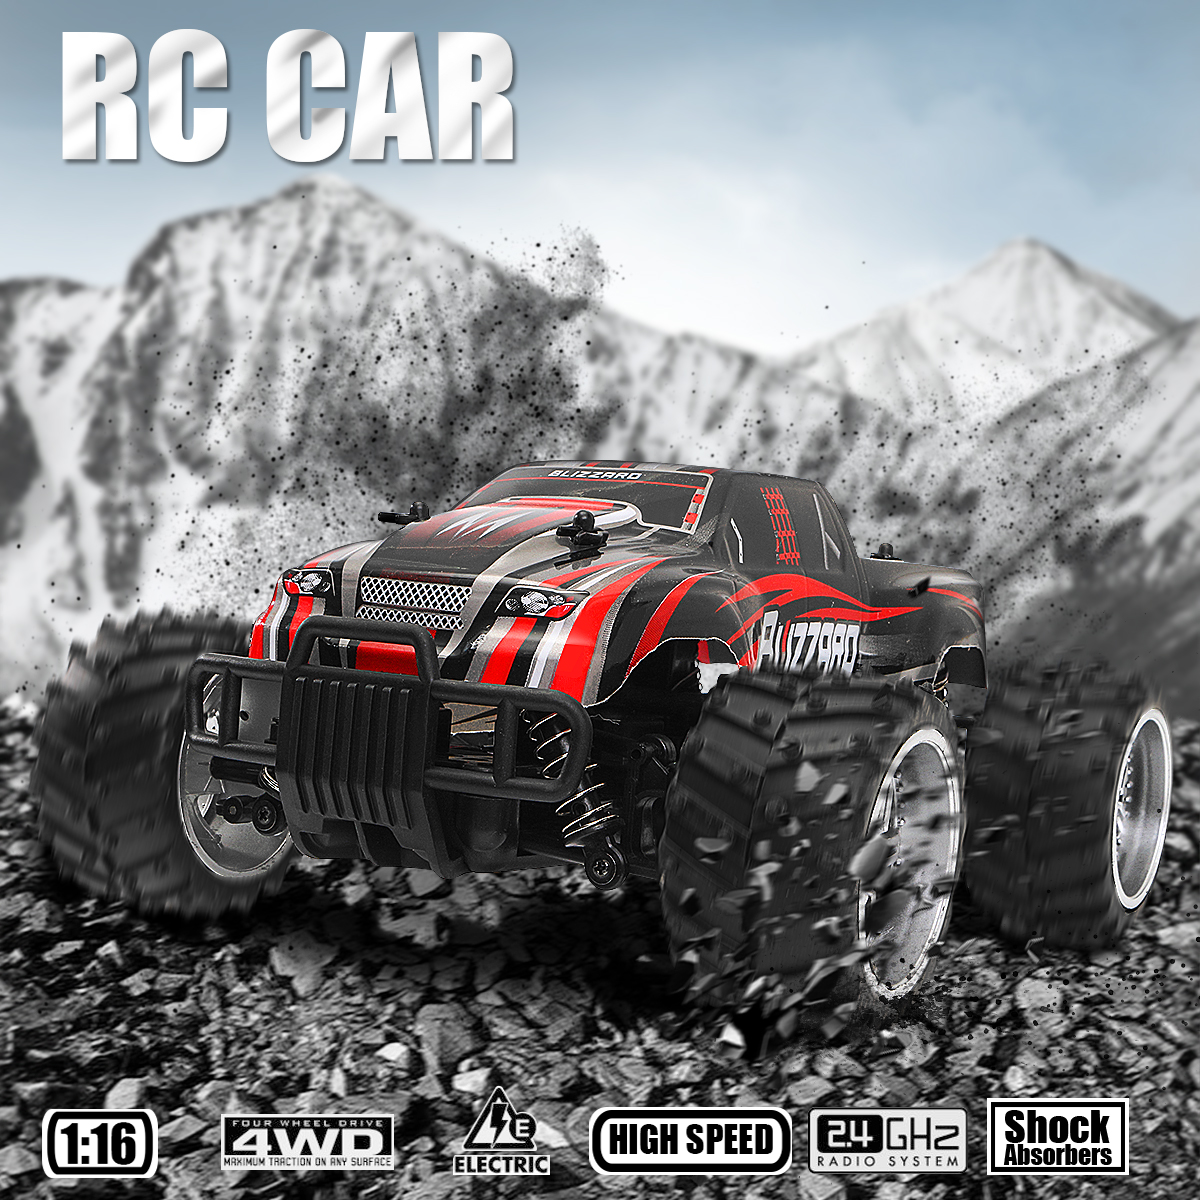 1/16 Scale 2WD 2.4GHz High Speed Radio Remote Control RC Crawler Racing Buggy Car Off Road Truck RTR Gift Toy for Children Kid watch band12mm 14mm 16mm 18mm 20mm lizard pattern black genuine leather watch bands strap bracelets silver pin watch buckle